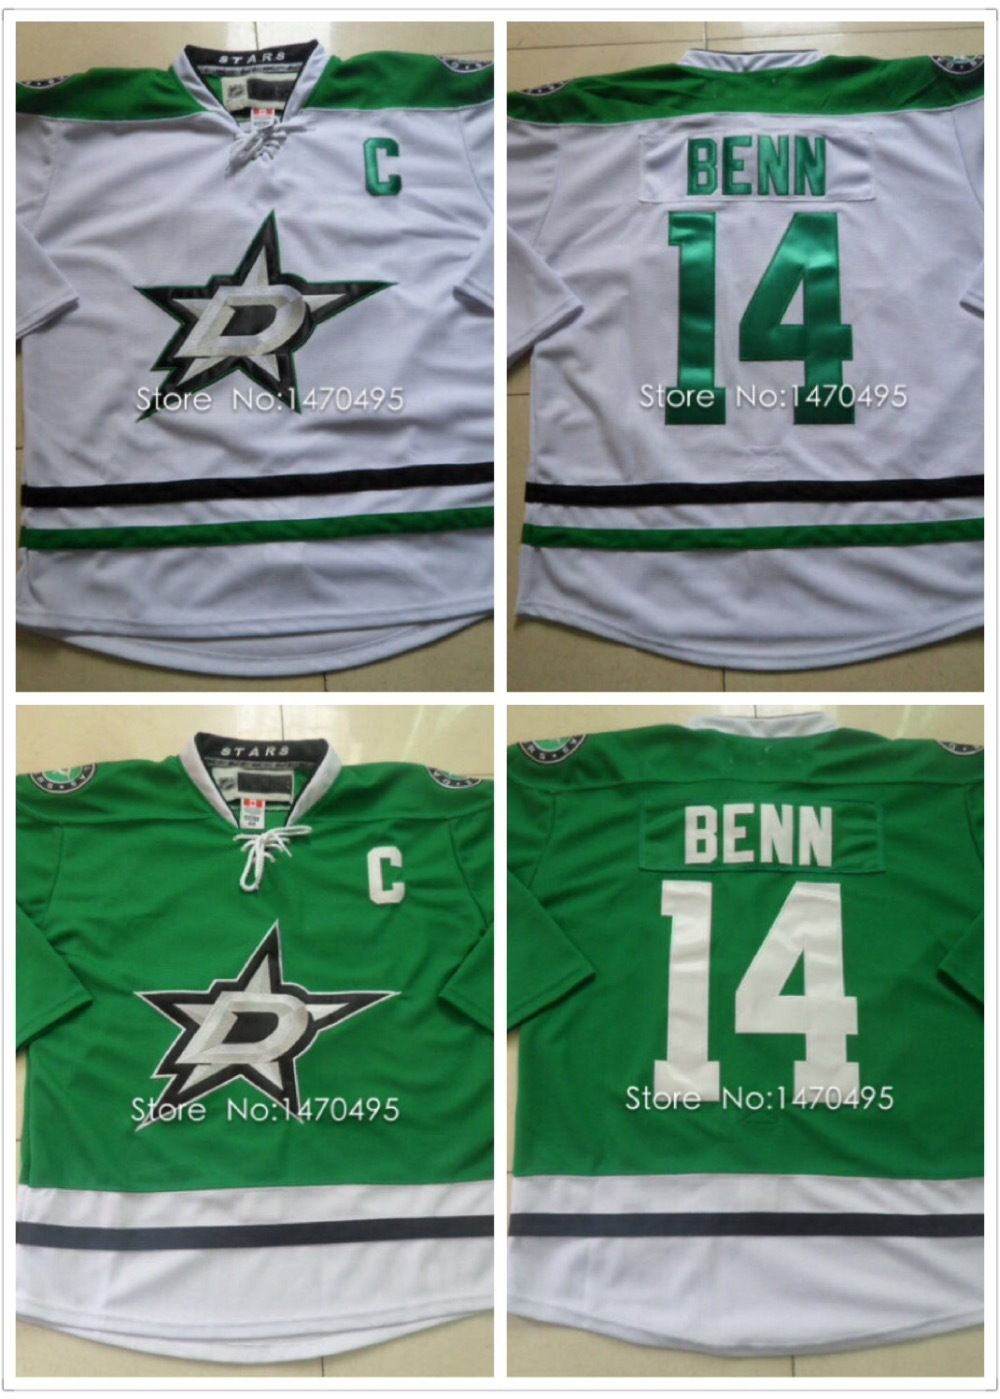 finest selection 8244d 4c8cd Free Shipping Stitched Authentic Jerseys #14 Jamie Benn ...